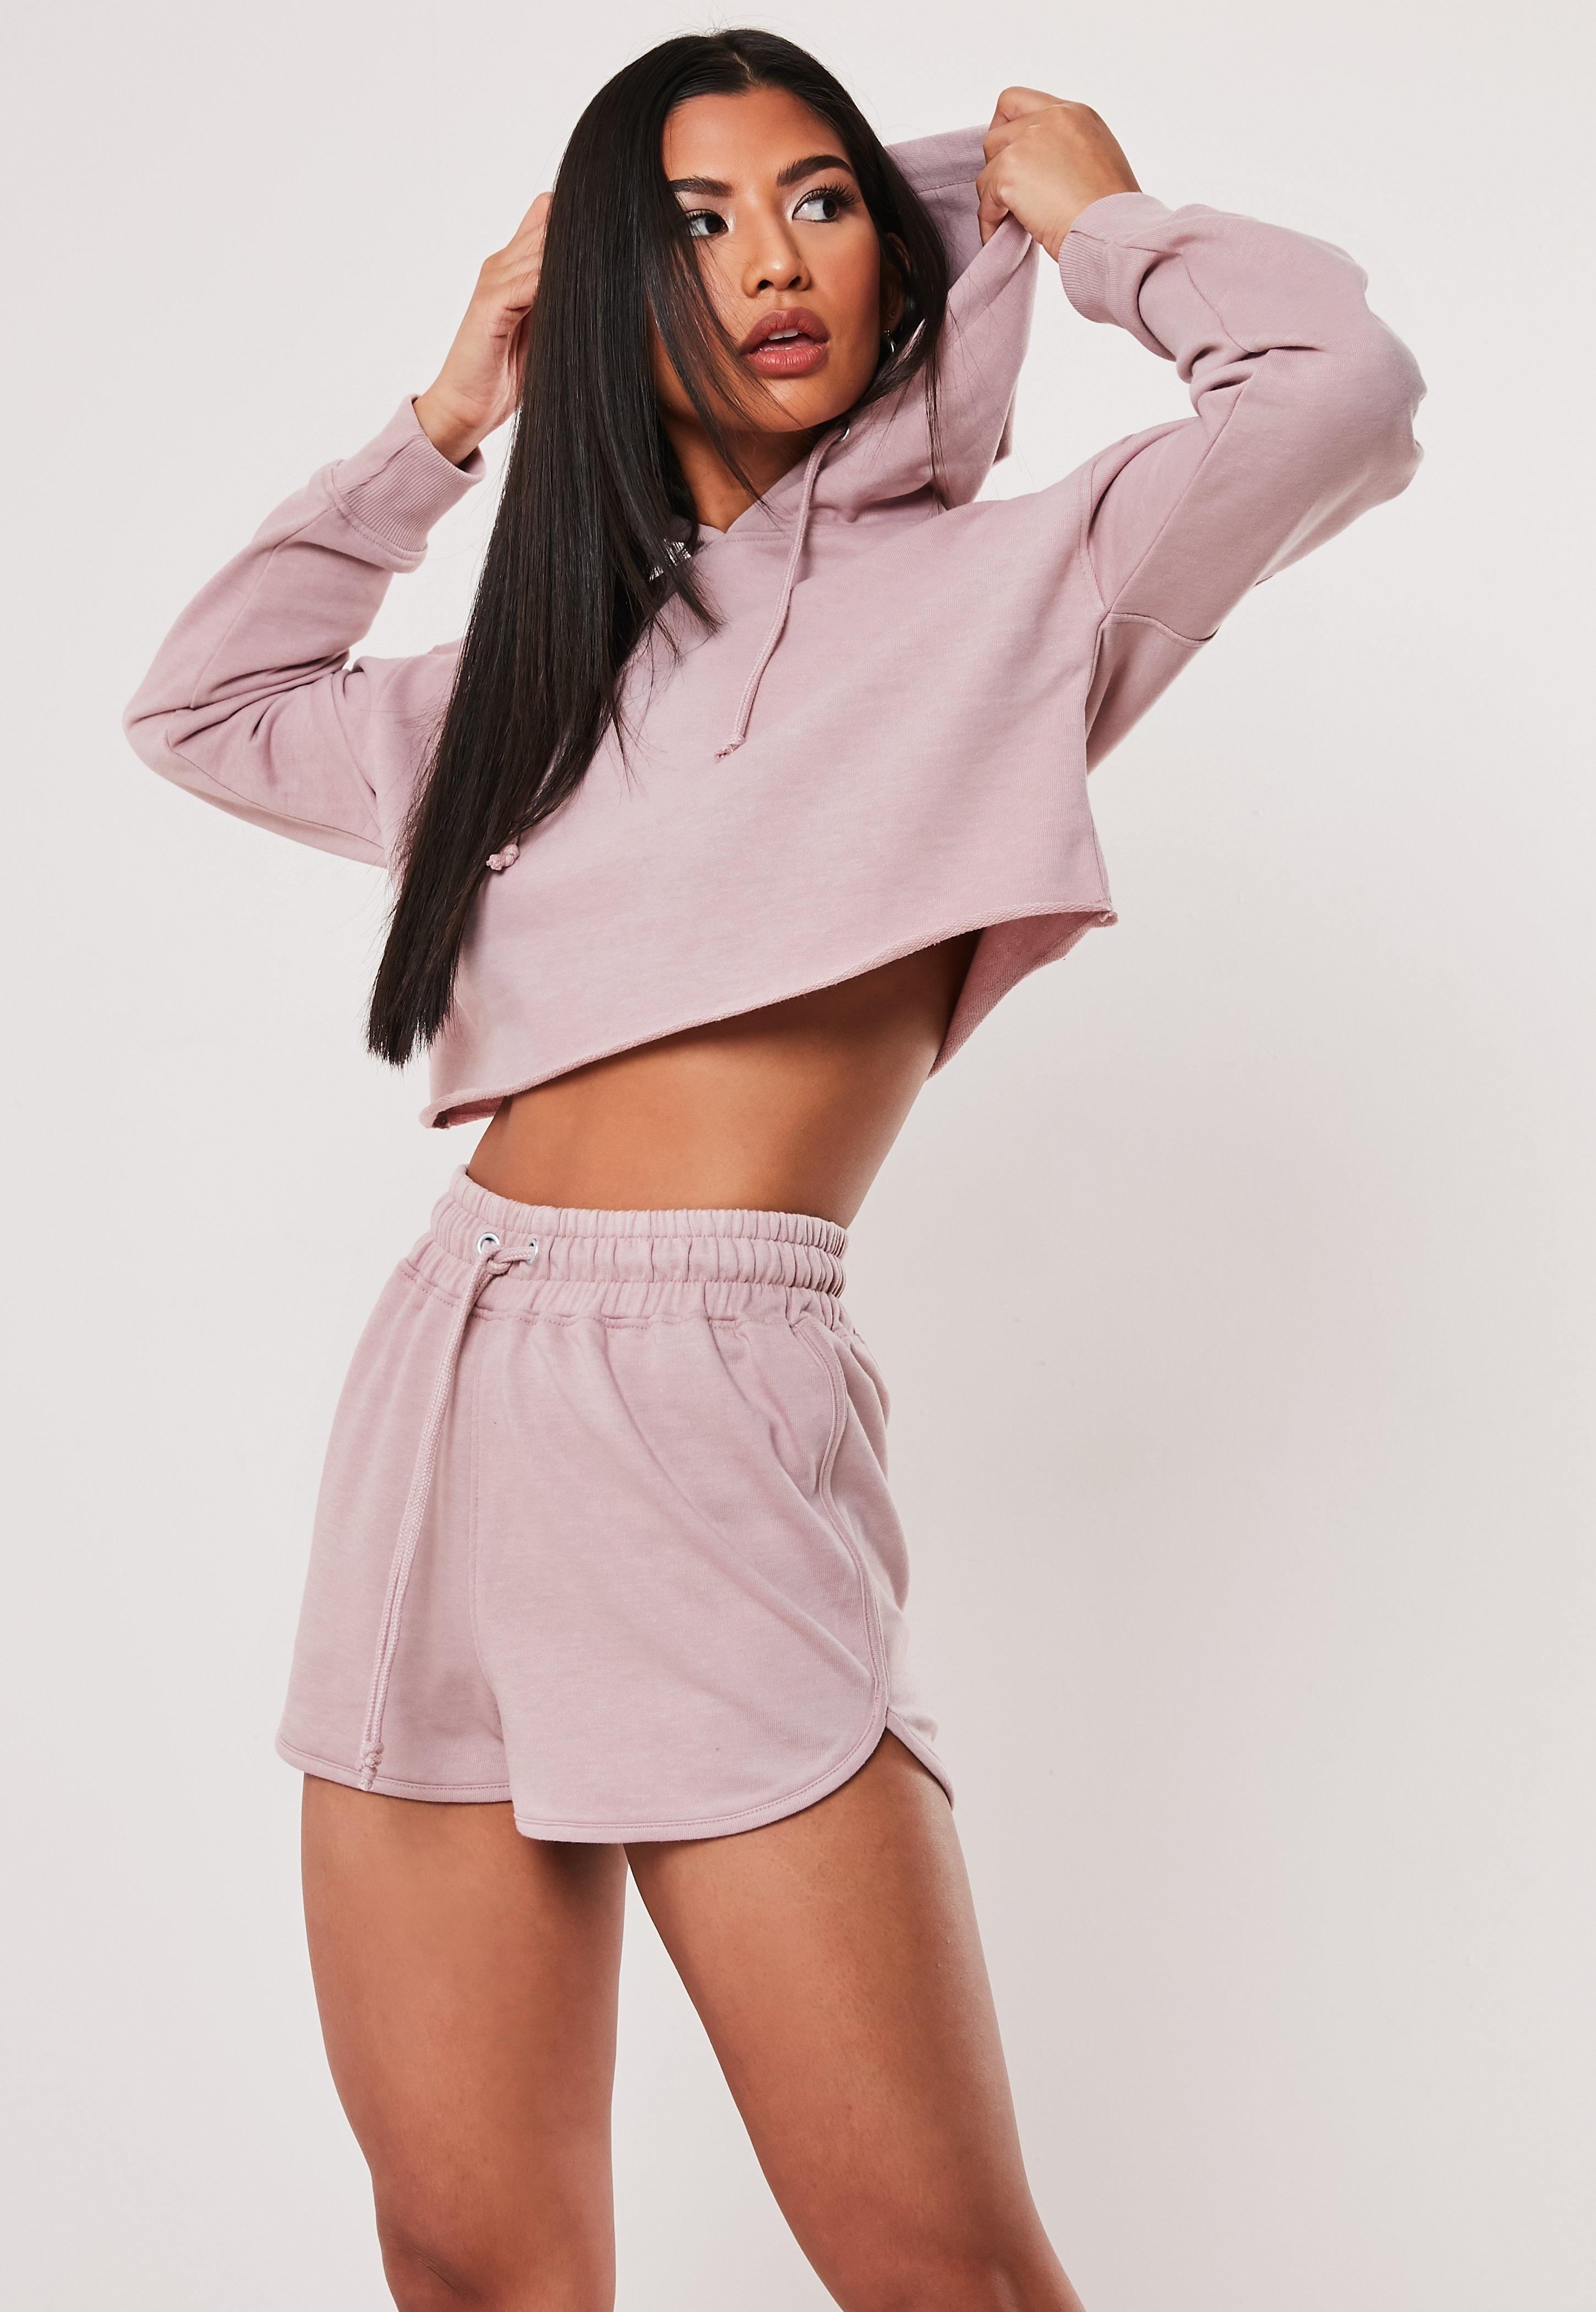 77a345fa83ff39 Ensemble sweat à capuche et short rose